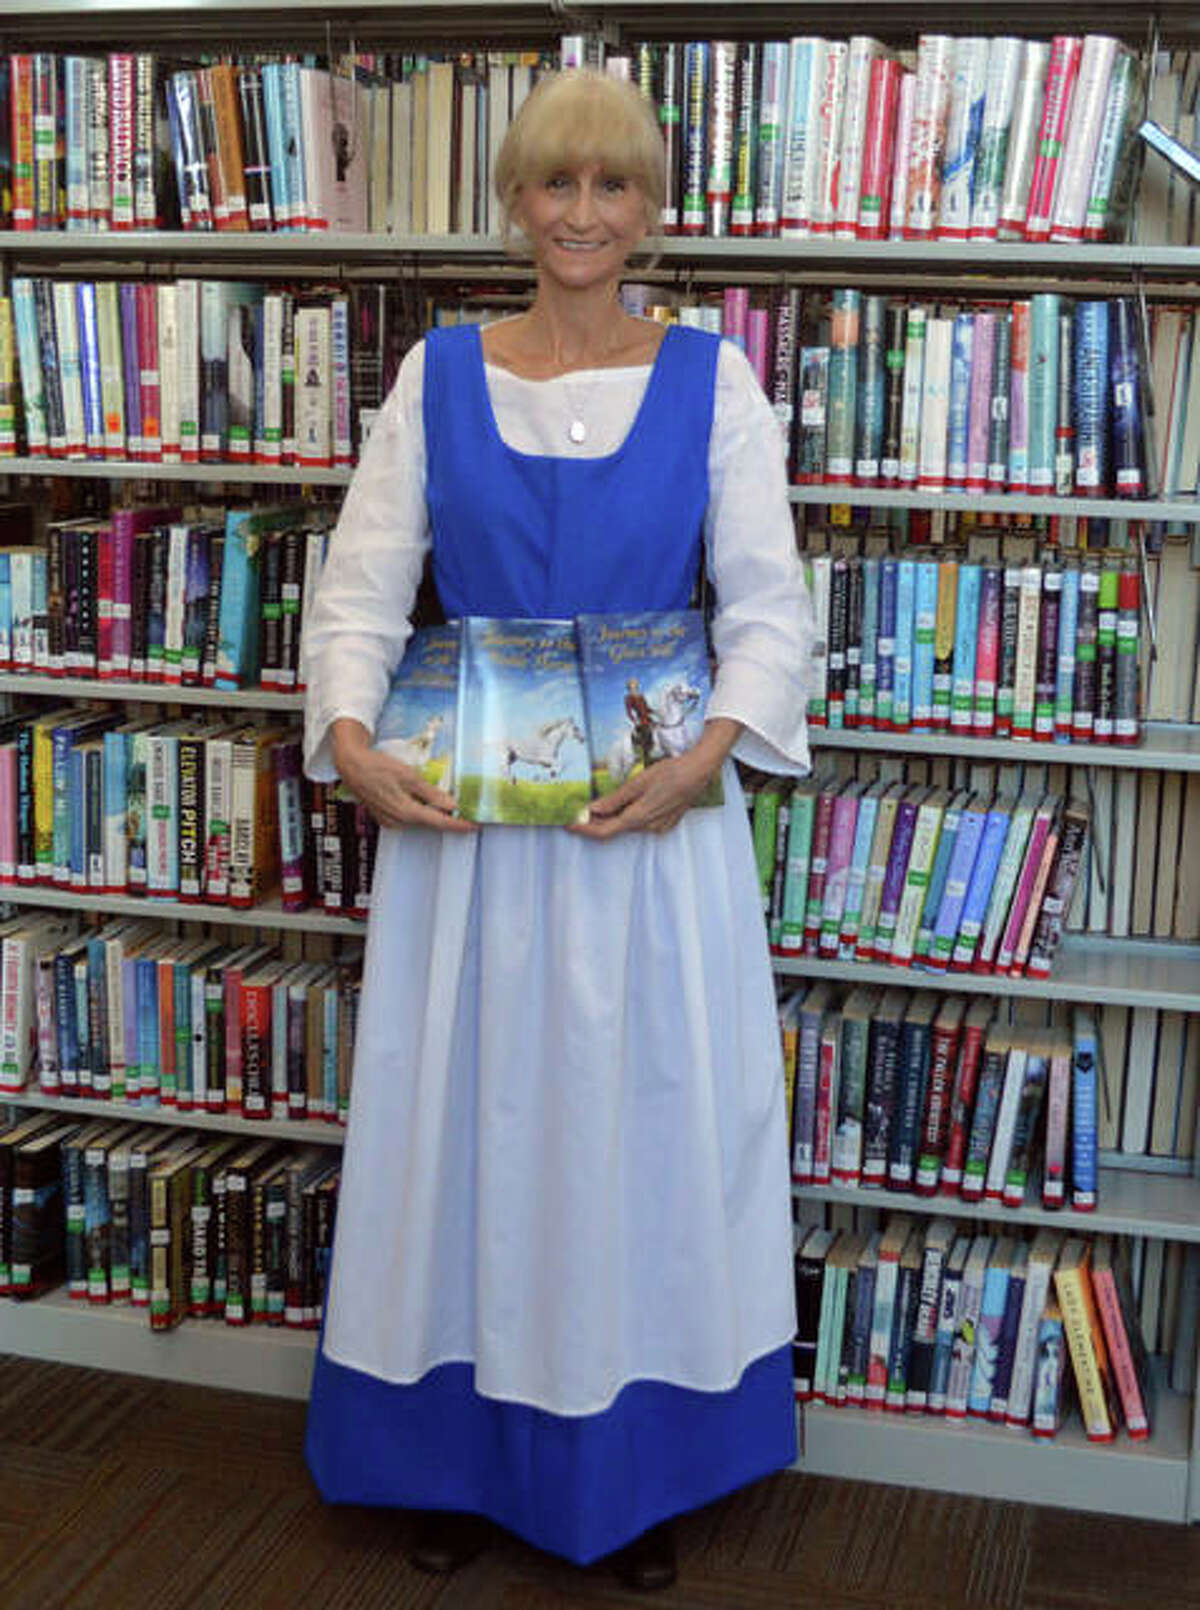 Diane Frazier, a retired kindergarten teacher from Glen Carbon, recently completed the Journey Books of Faith and Family trilogy, which are targeted at middle-grade students. She is wearing a 1600s period costume that she hopes to wear to schools to talk about the books.